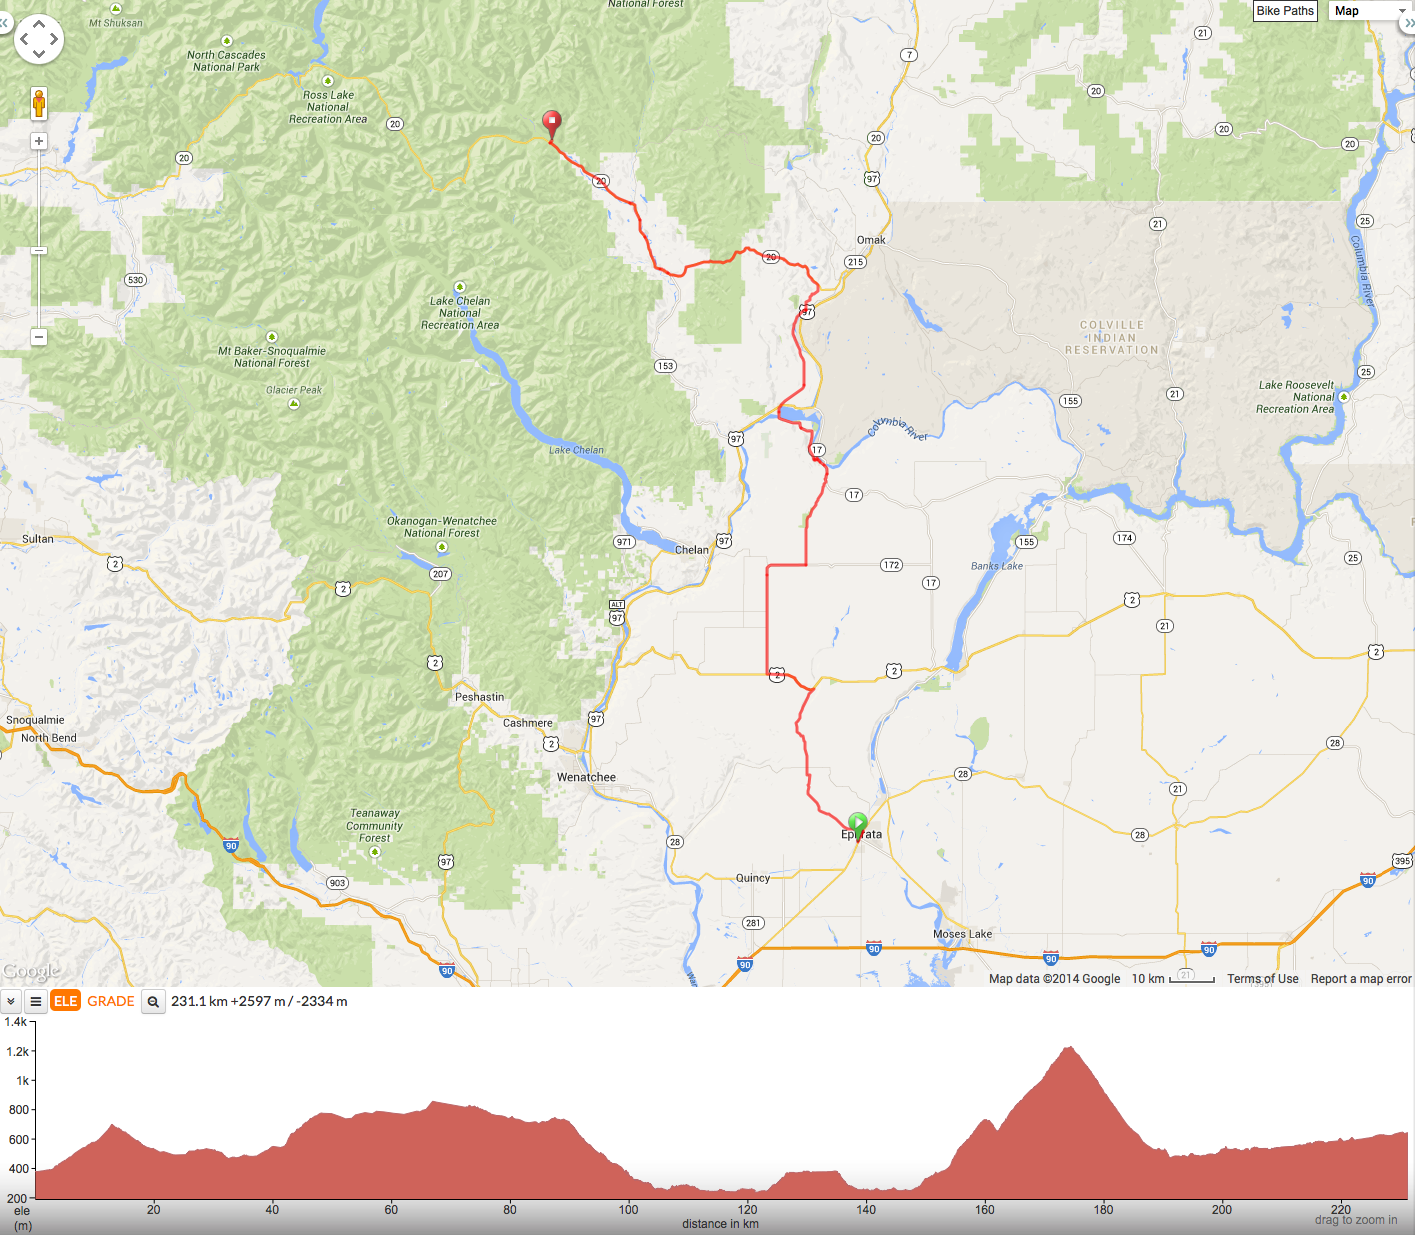 Day 3 - Ephrata to Mazama